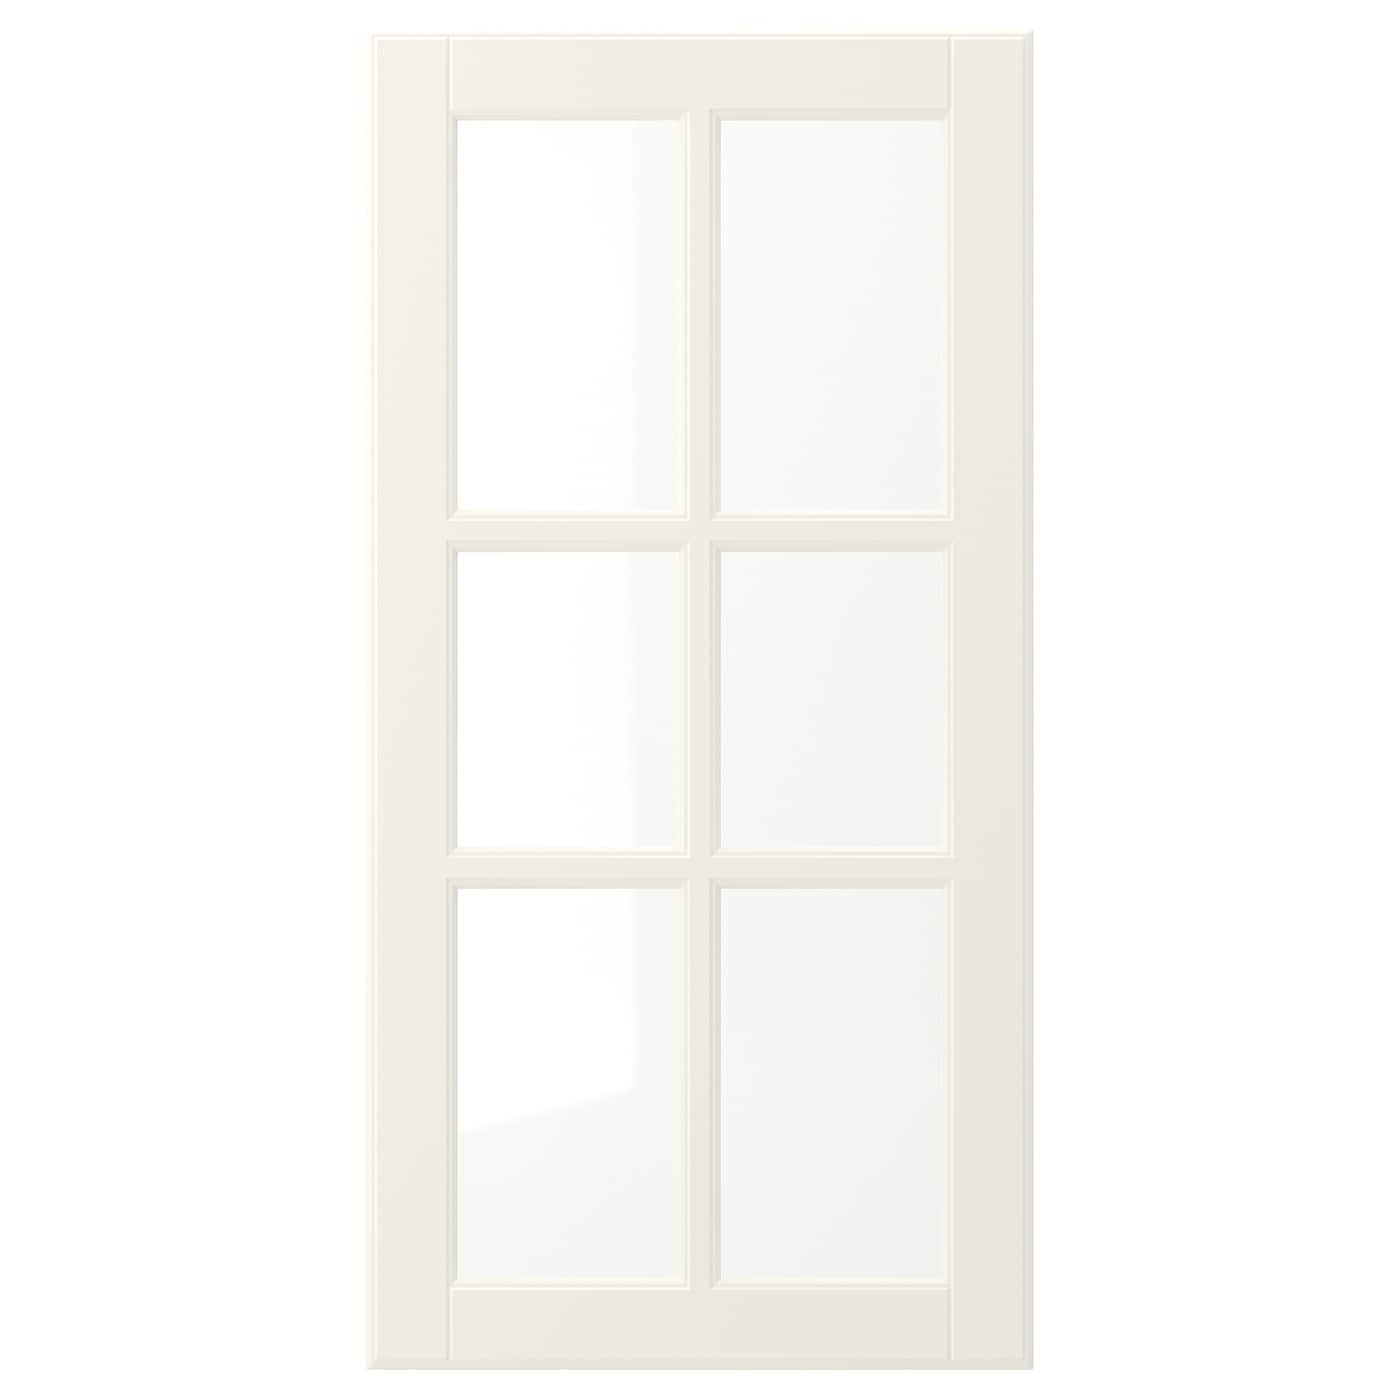 IKEA BODBYN glass door 25 year guarantee. Read about the terms in the guarantee brochure.